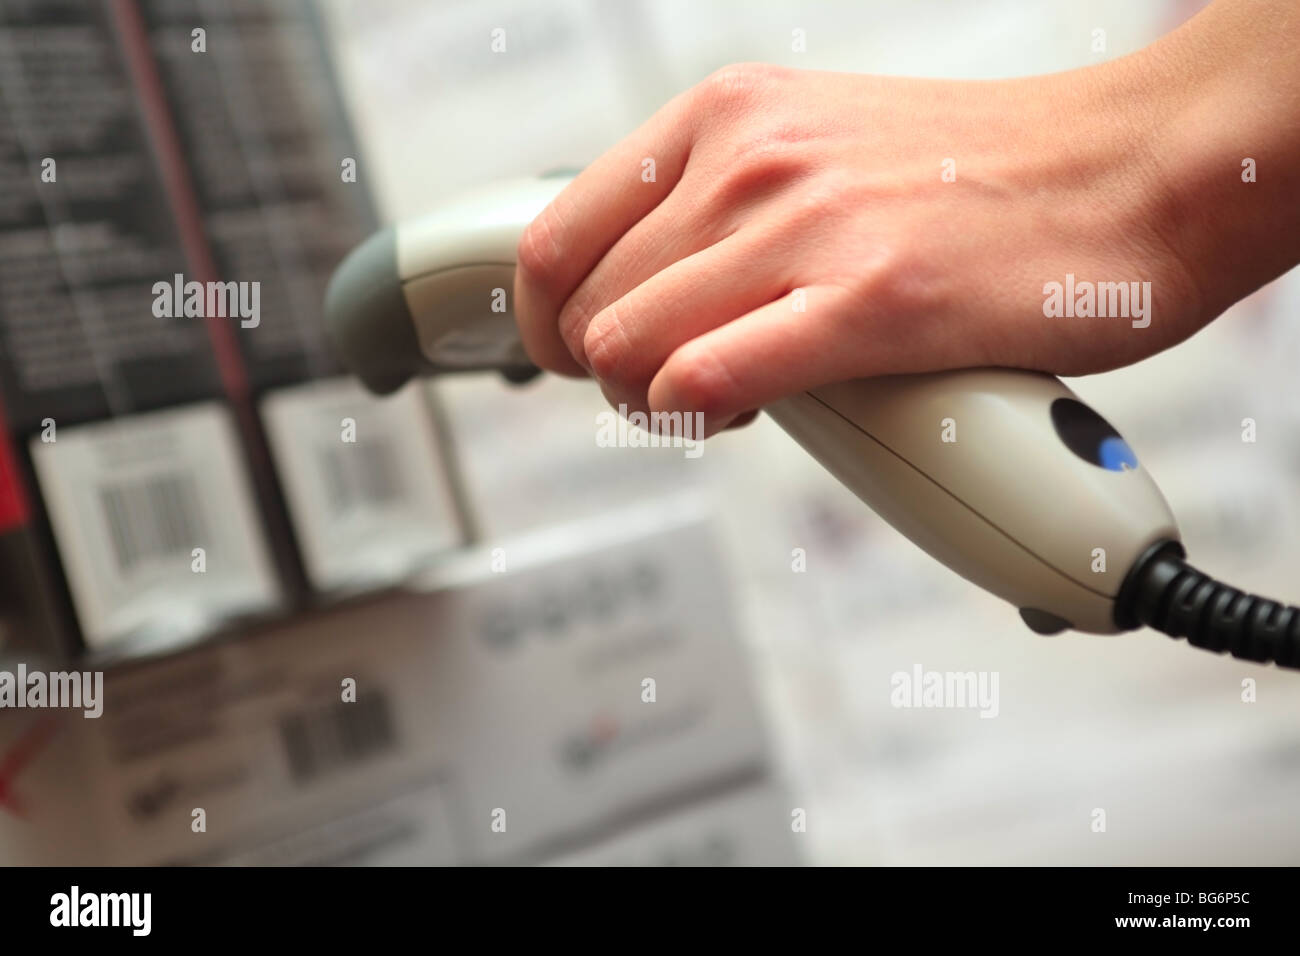 Store. Barcode reader in the hand of the girl. Shallow DOF. - Stock Image